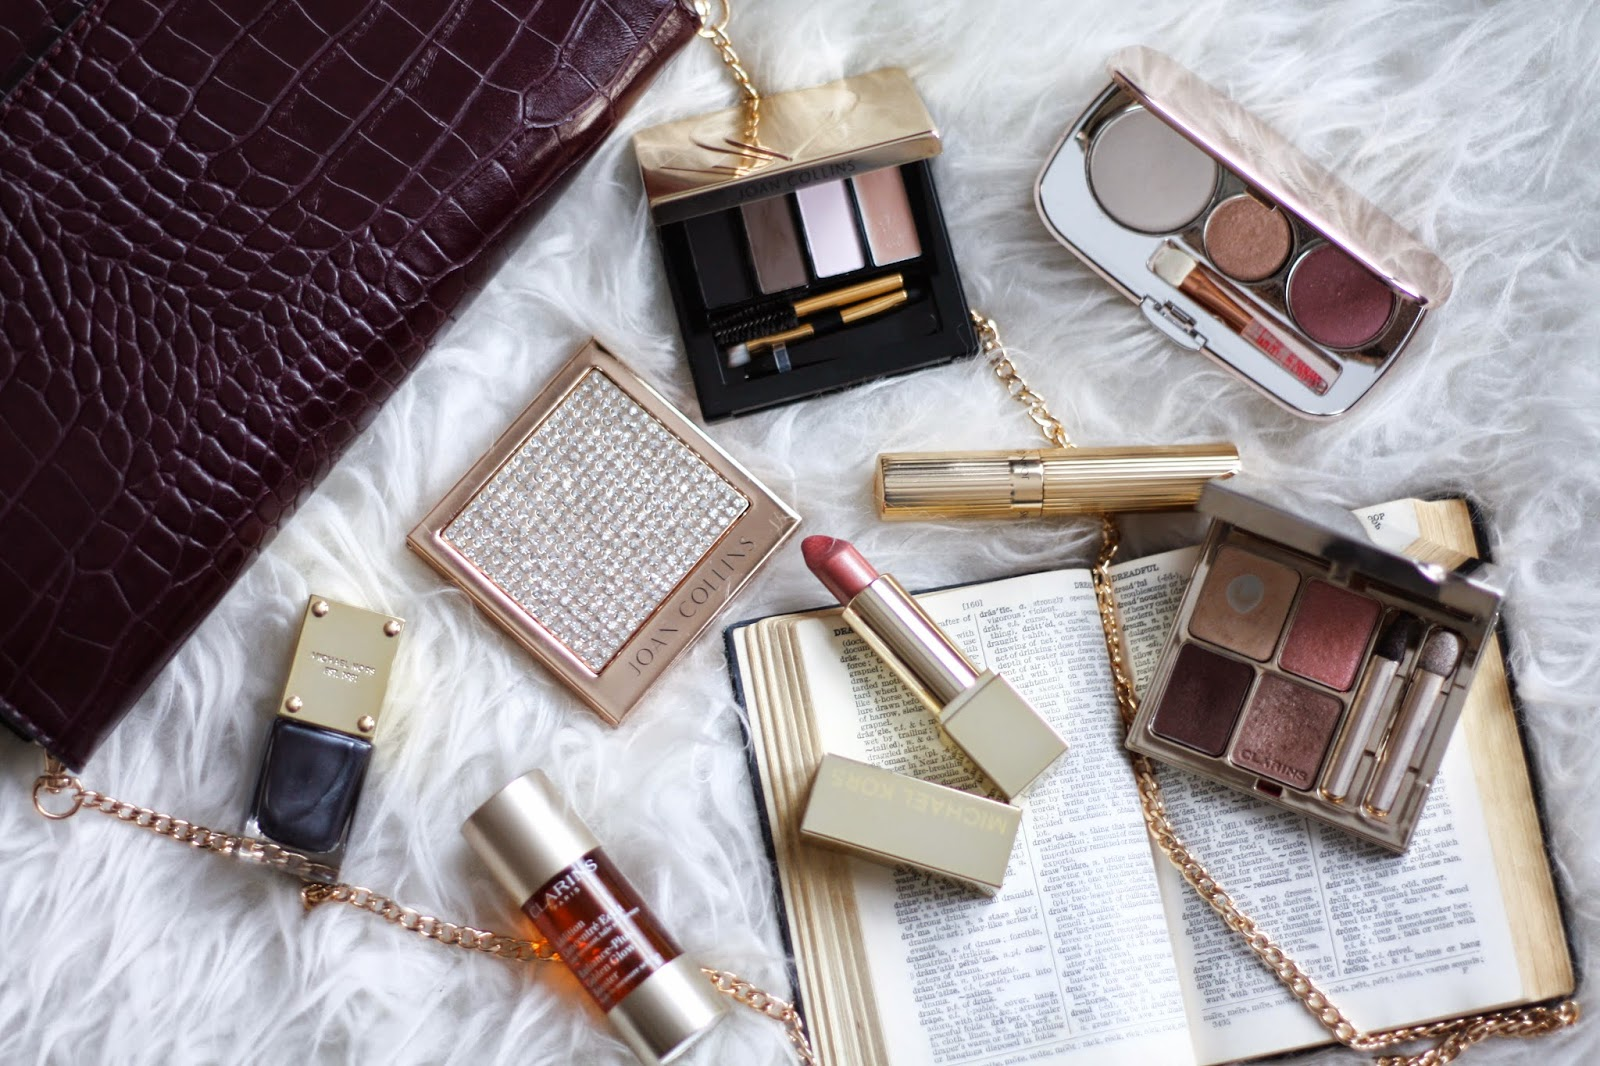 Michael Kors, Clarins, Jane Iredale, Joan Collins review